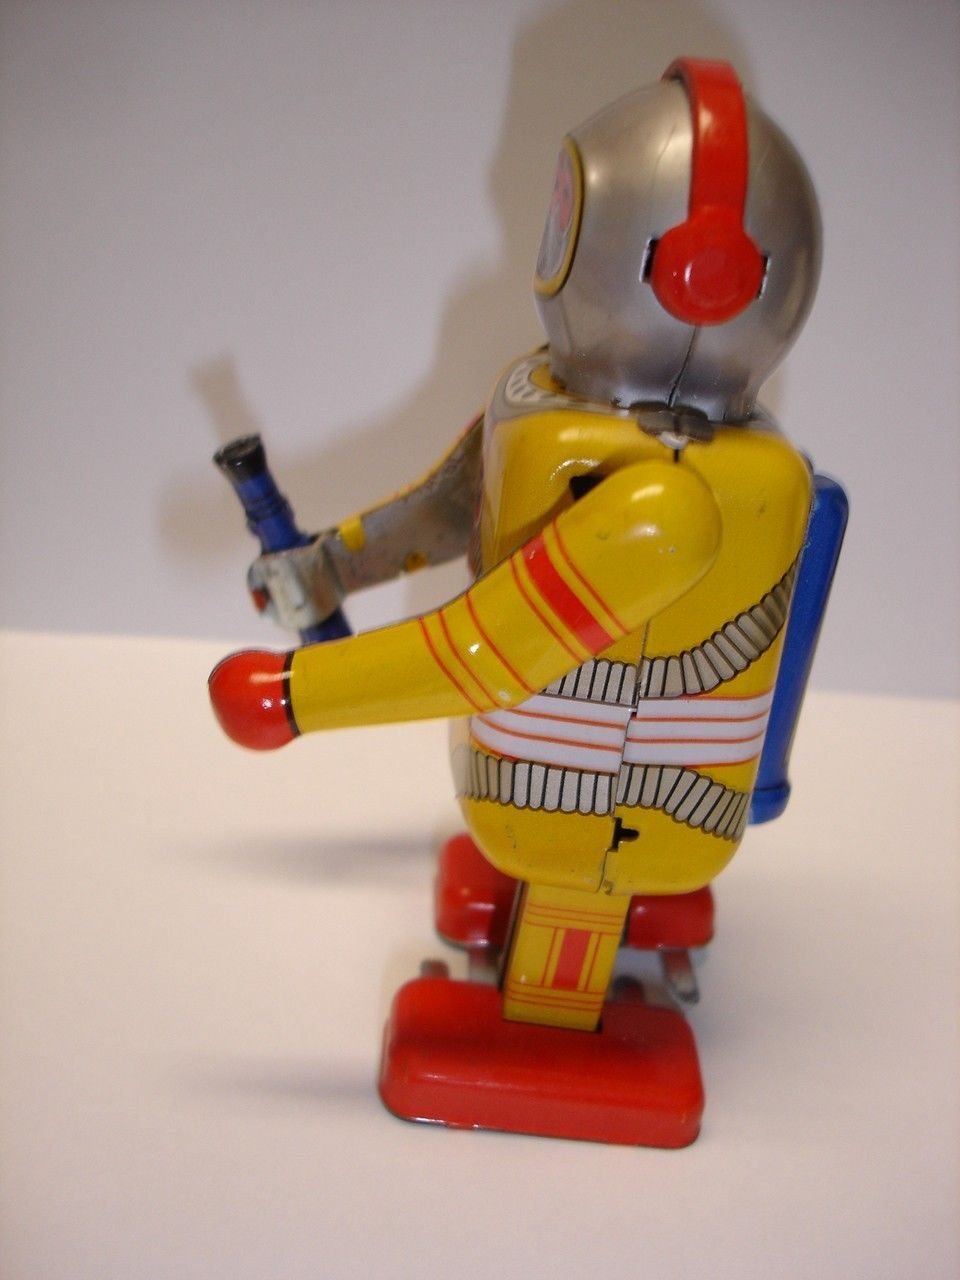 "Used & not working 4.5"" tall Astronaut wind up tin toy robot image 3"